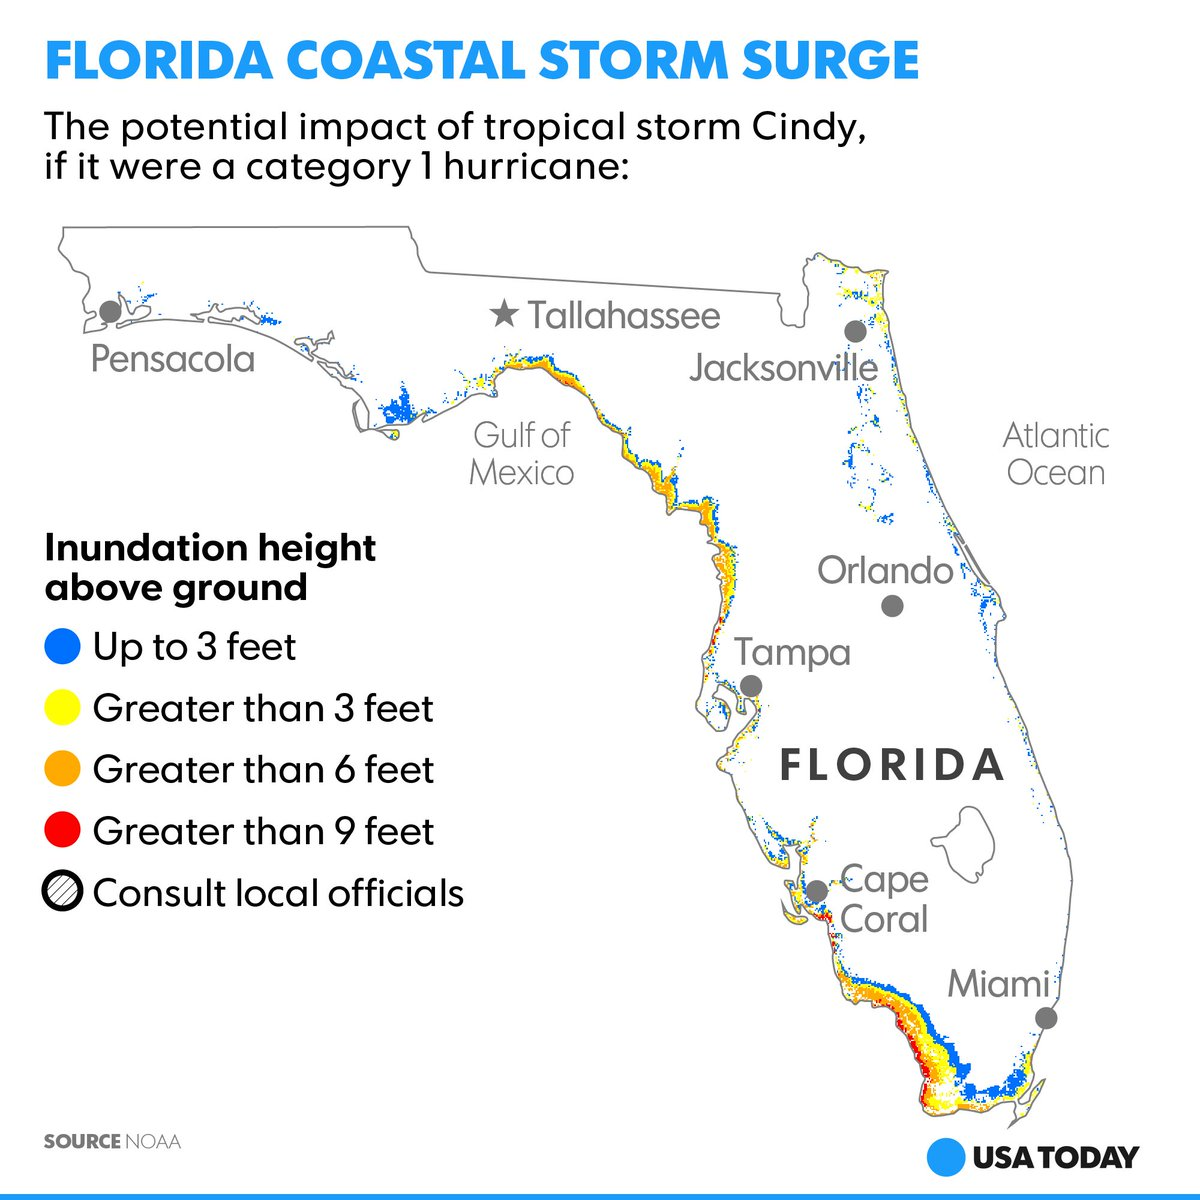 the impact of a tropical storm